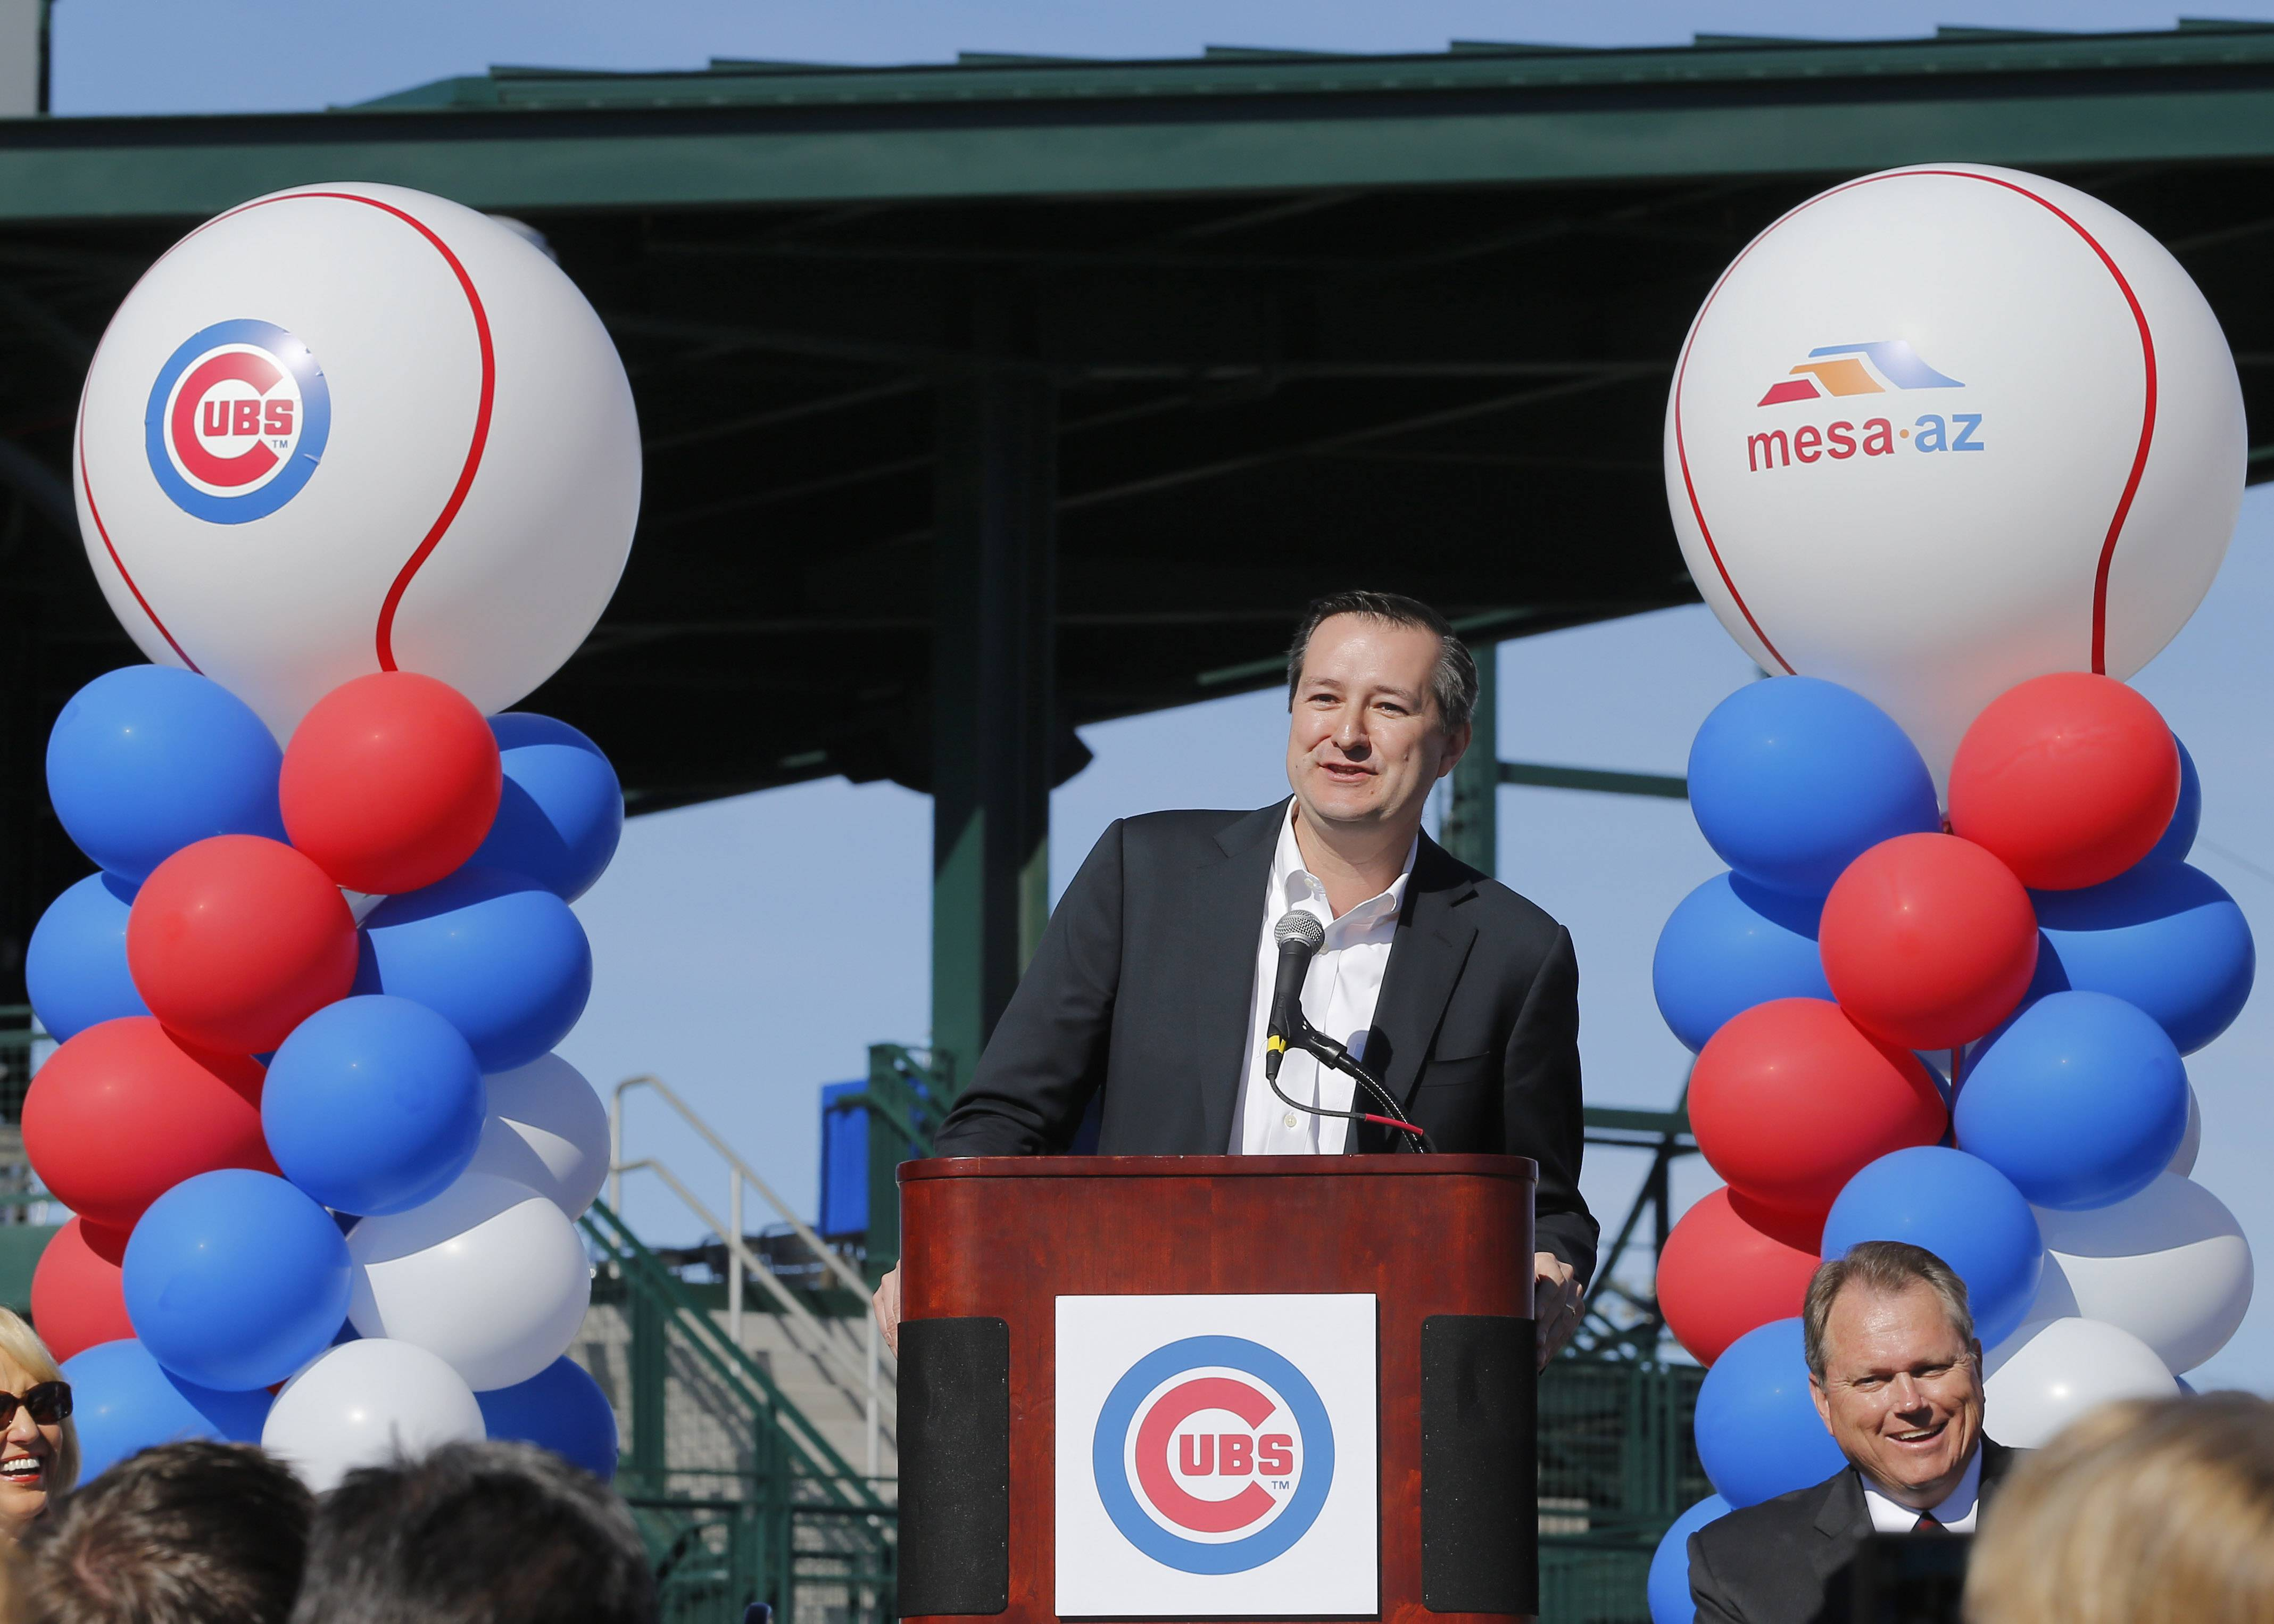 Chicago Cubs Chairman Tom Ricketts speaks during a ceremony to unveil the Cubs' new Cactus League spring training baseball facility, Wednesday, Feb. 12, 2014, in Mesa, Ariz. (AP Photo/Matt York)